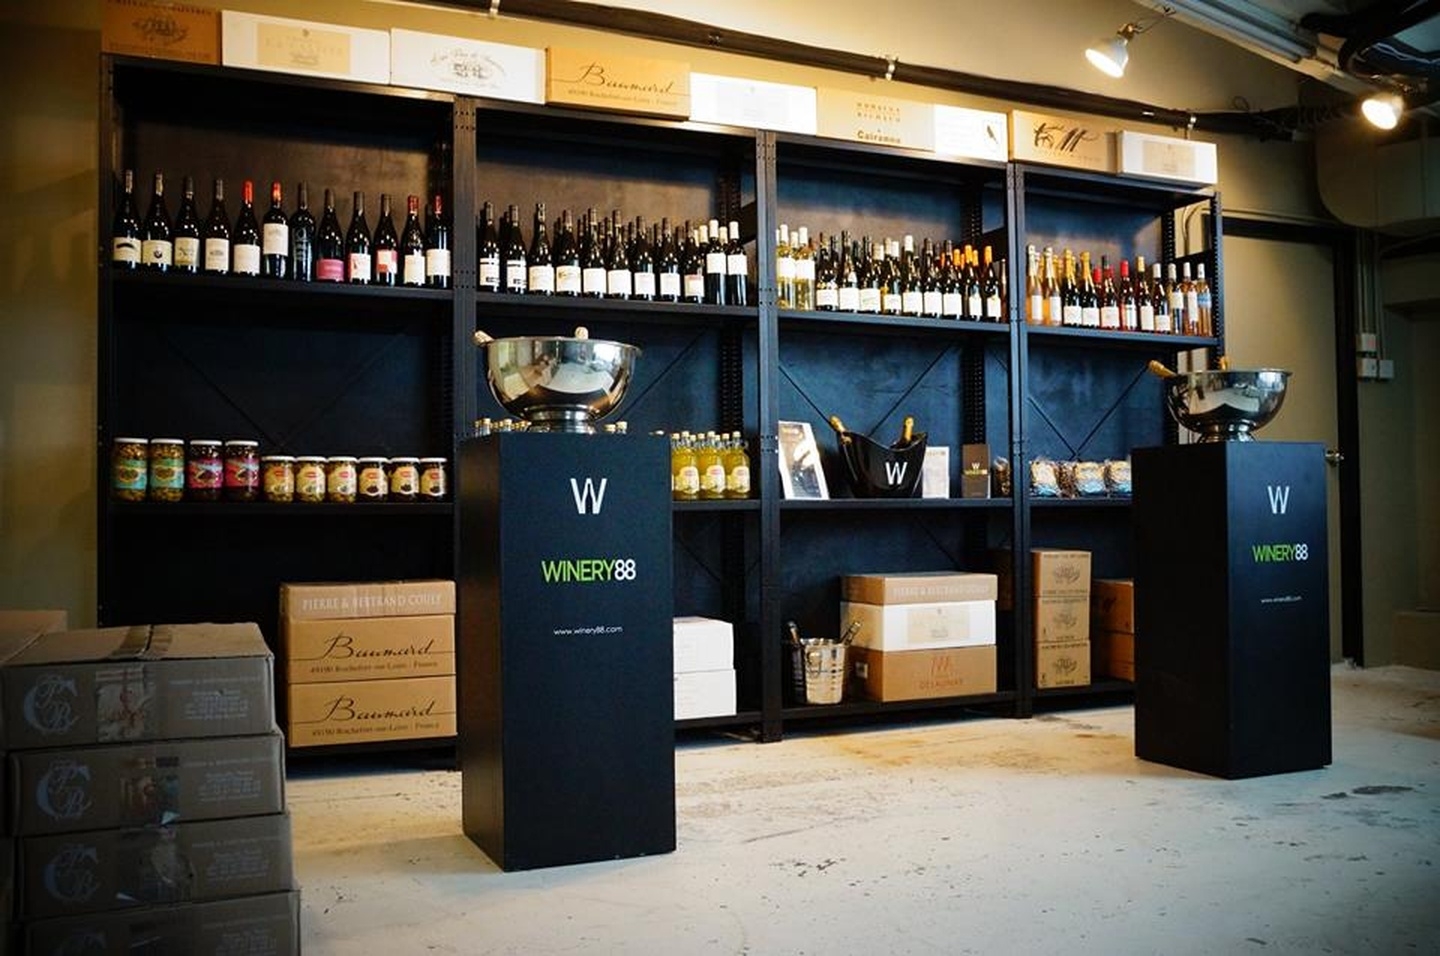 Hong Kong corporate event venues Party room Warehouse by Winery88 image 11